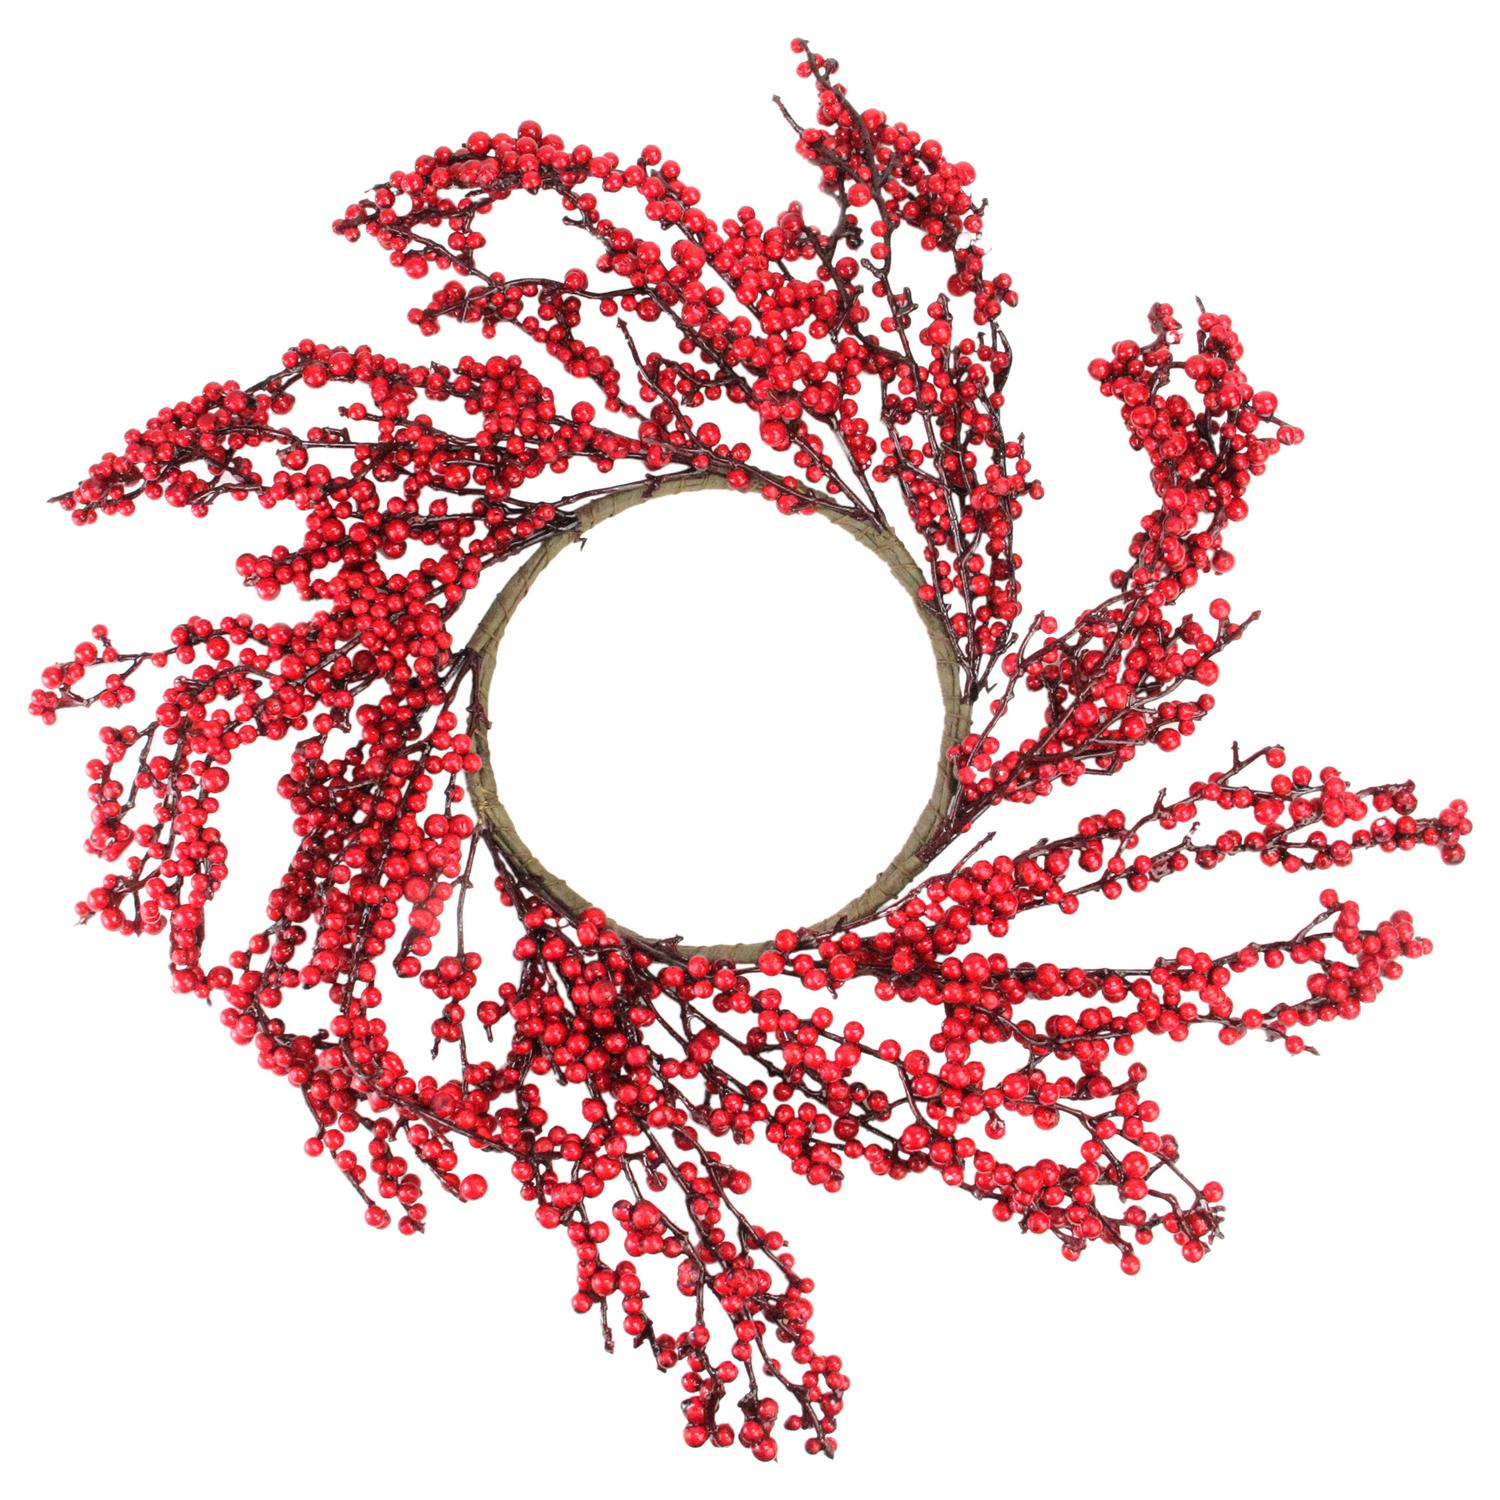 Northlight 22 in. Festive Red Berries Christmas Wreath